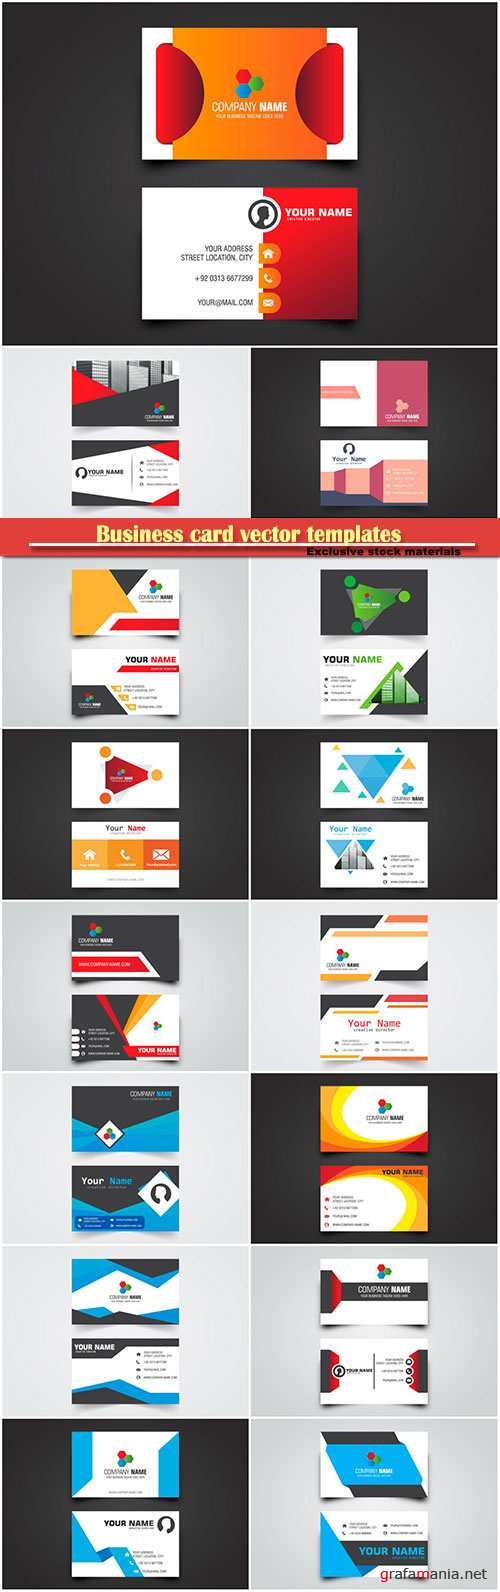 Business card vector templates # 38